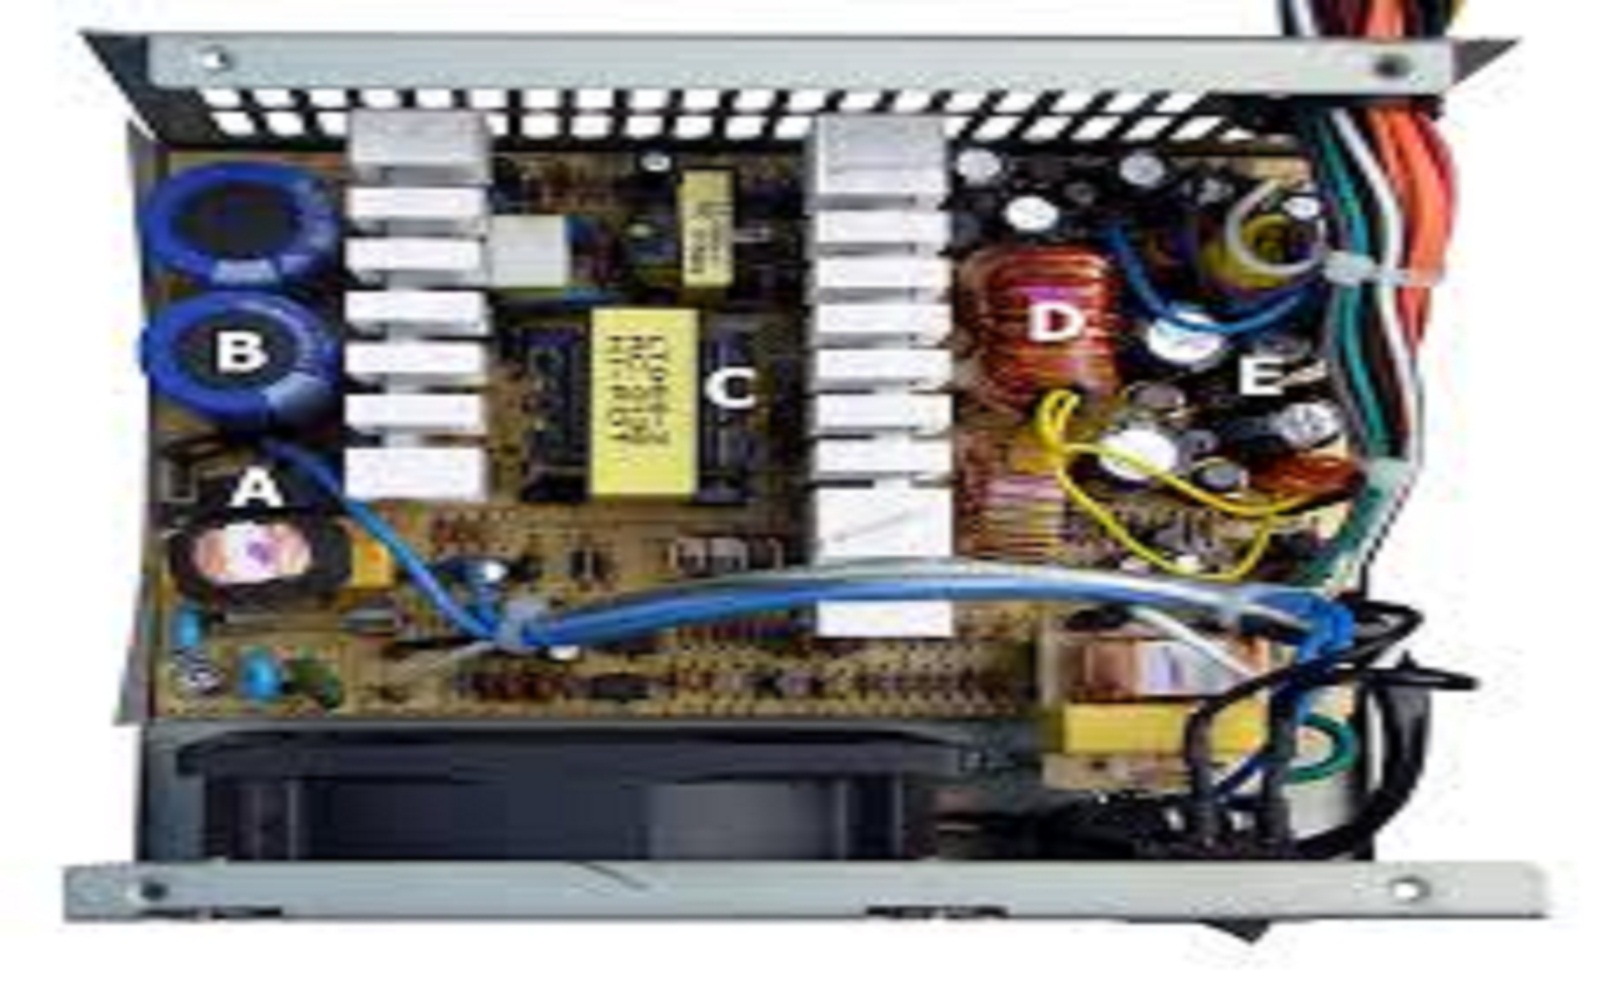 All Types of SMPS in Delhi | Chip level repair | SMPS/Power Supply ...